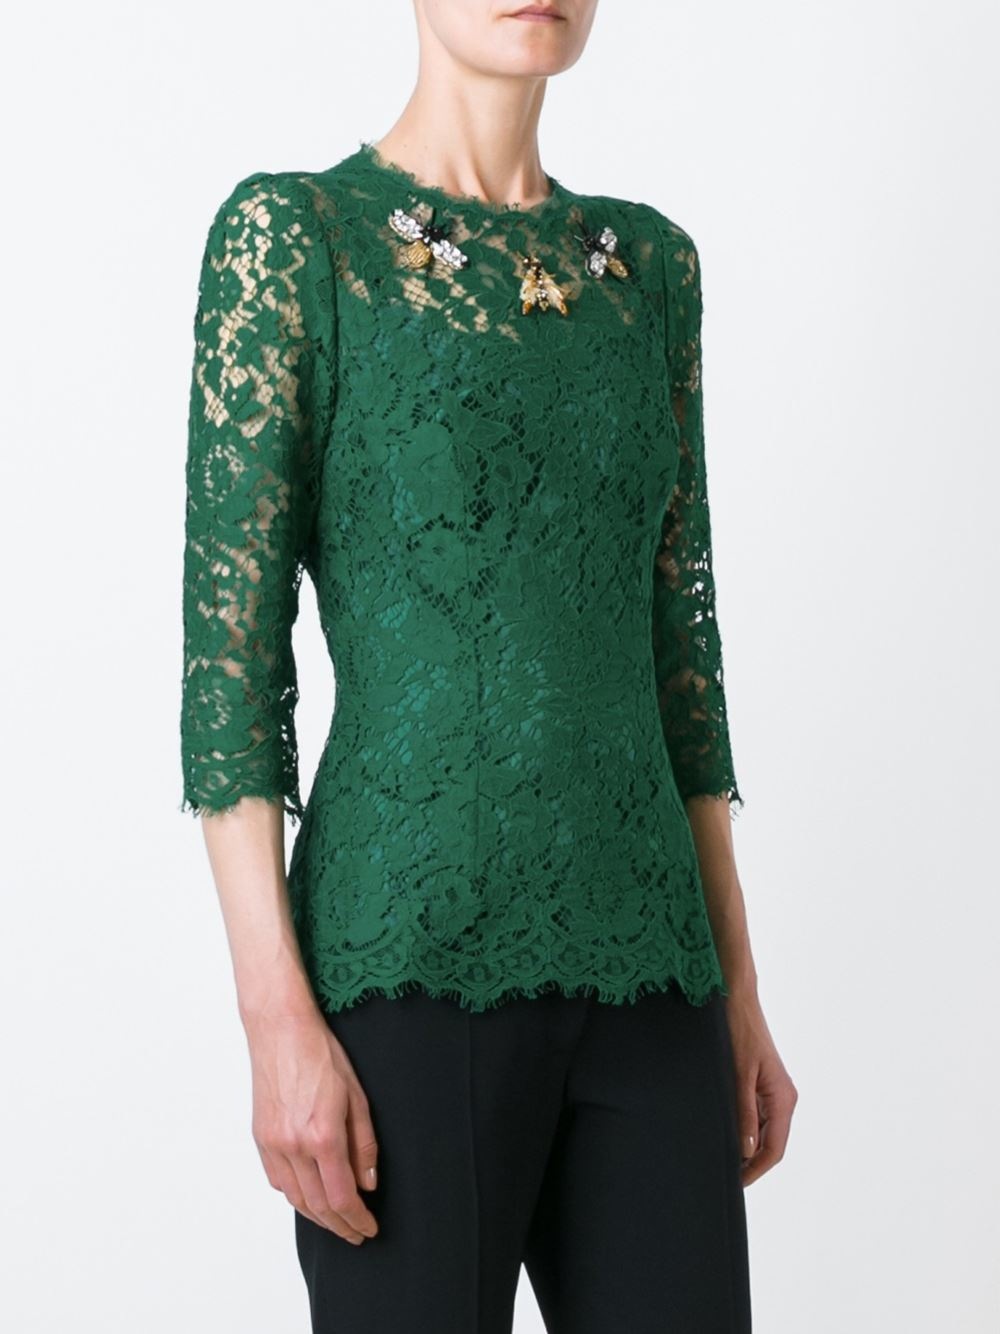 Dolce & gabbana Embellished Lace Blouse in Green | Lyst